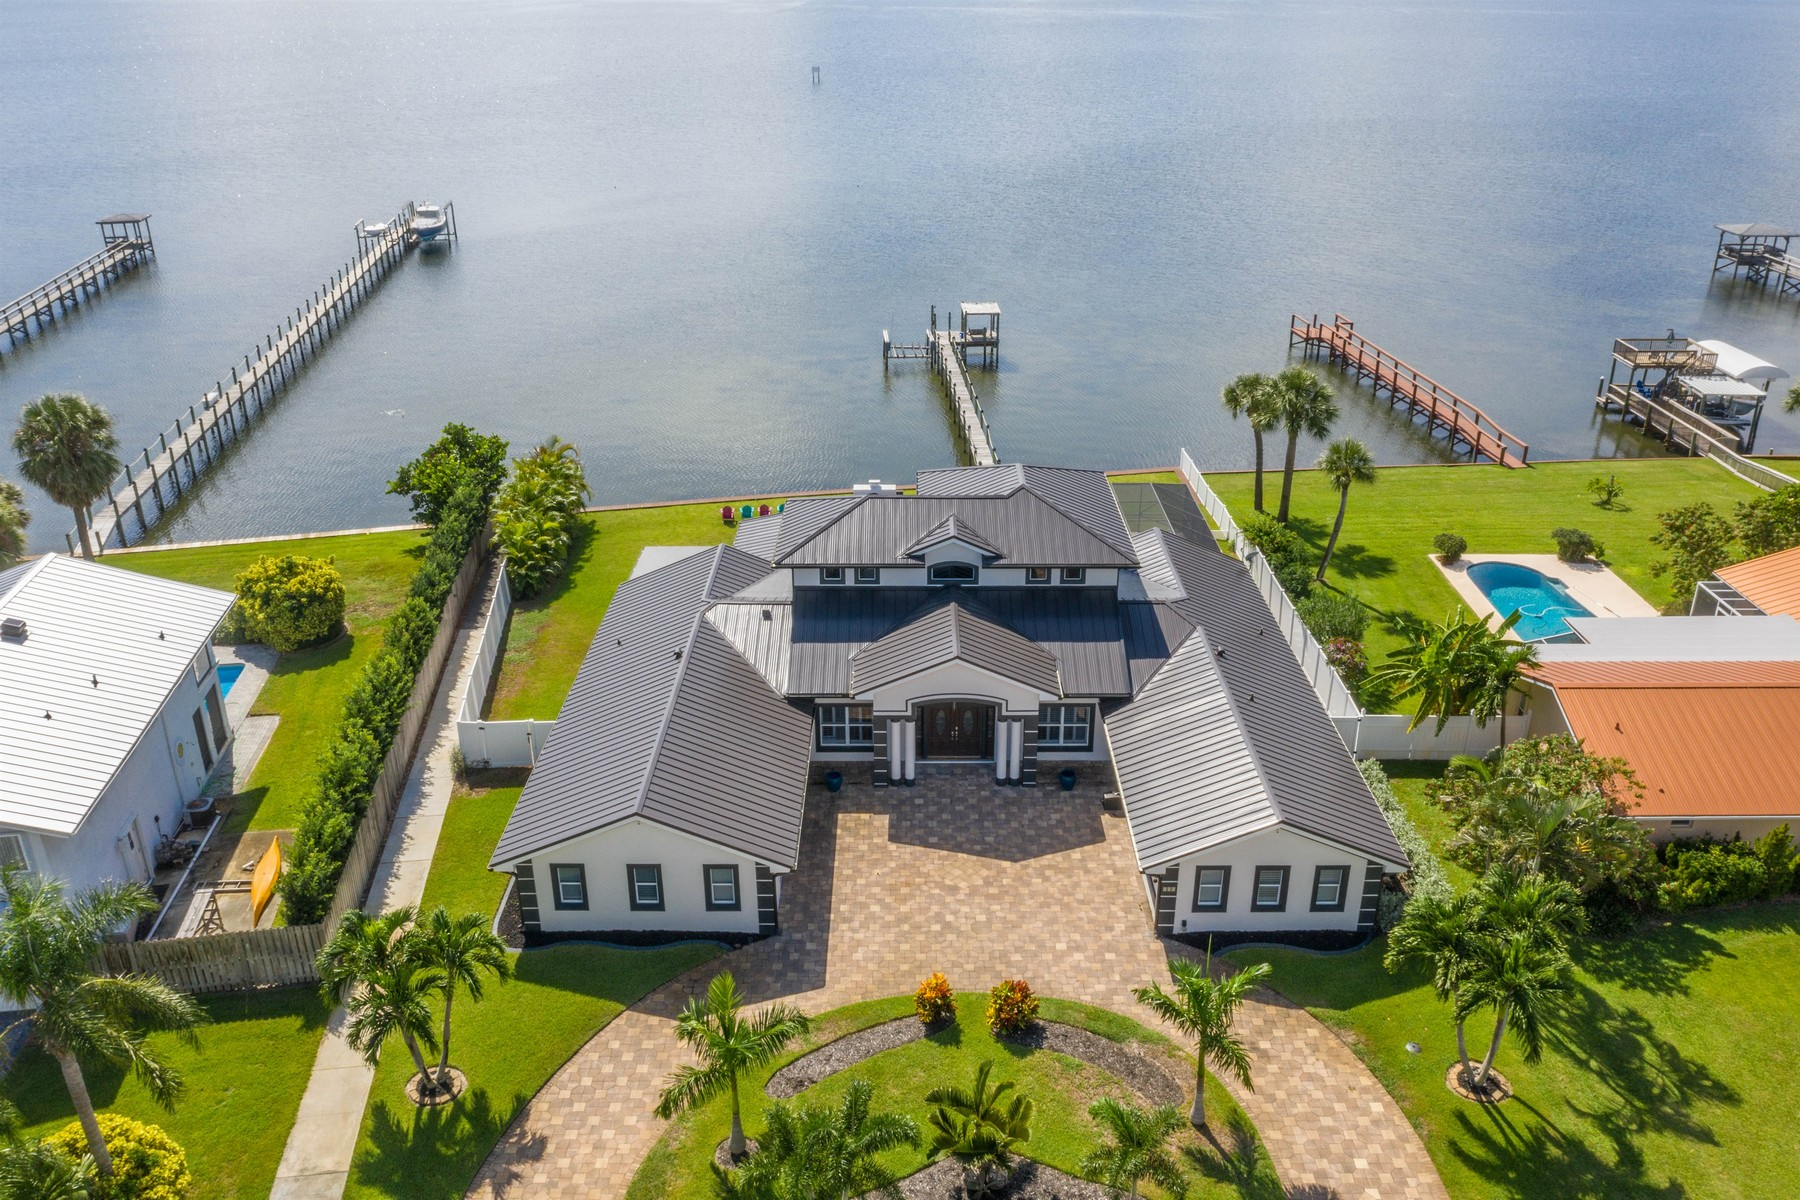 Single Family Home for Sale at Wonderful Riverfront Pool Home in Quiet Neighborhood 235 Sea Crest Drive Melbourne Beach, Florida 32951 United States